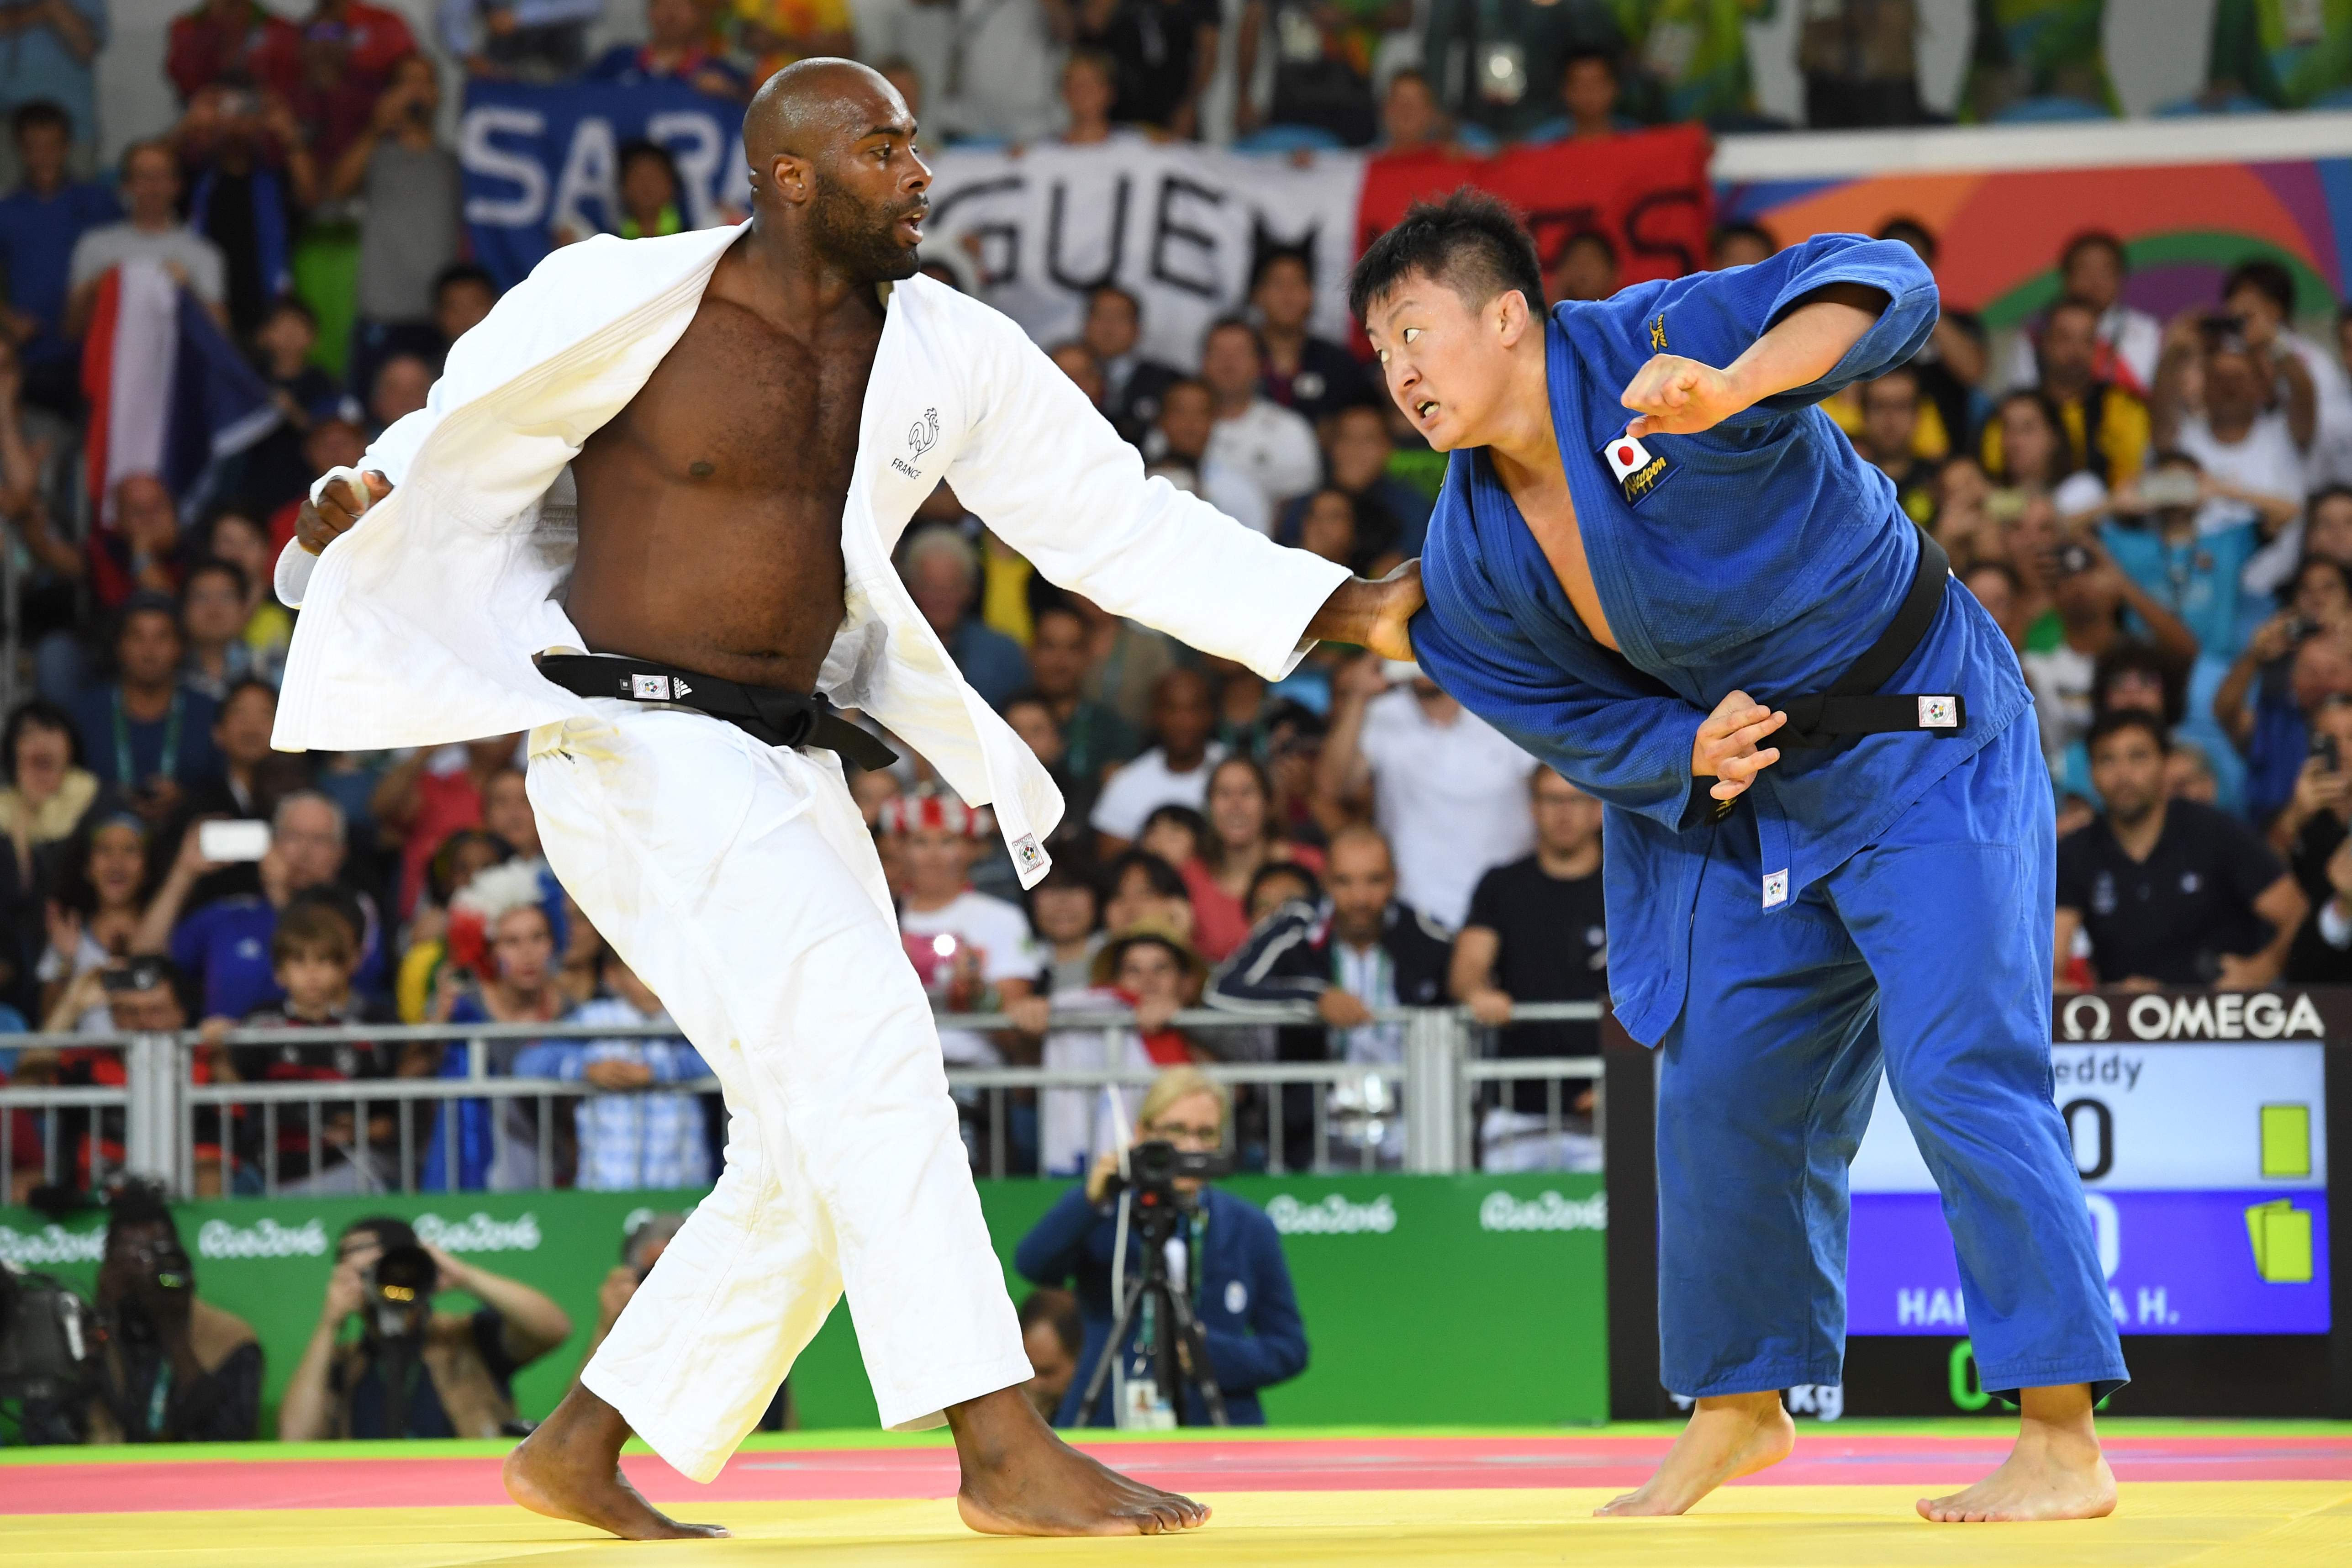 France's Teddy Riner (left) competes with Japan's Hisayoshi Harasawa during their men's oer 100 kg judo contest gold medal match of the Rio 2016 Olympic Games in Rio de Janeiro on Friday. | AFP-JIJI